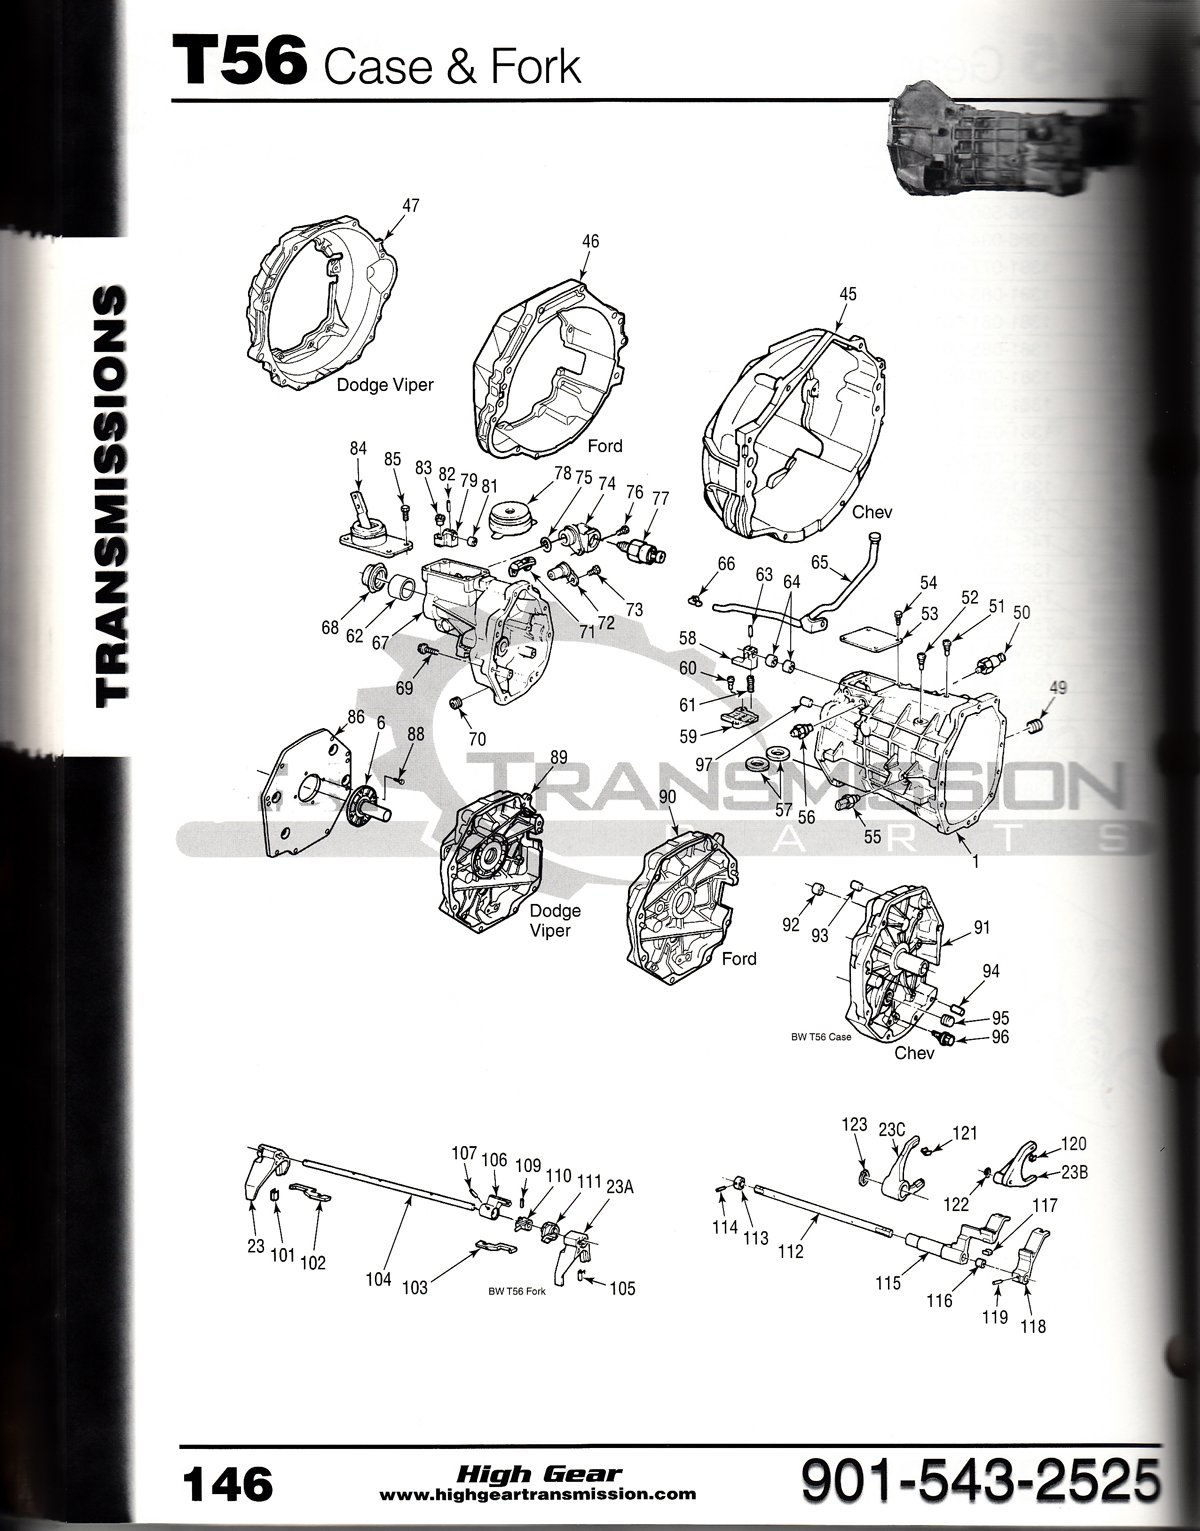 T 56 Diagrams Transmissions For Sale Dodge Viper Chevy Truck Wiring Harness Ebay